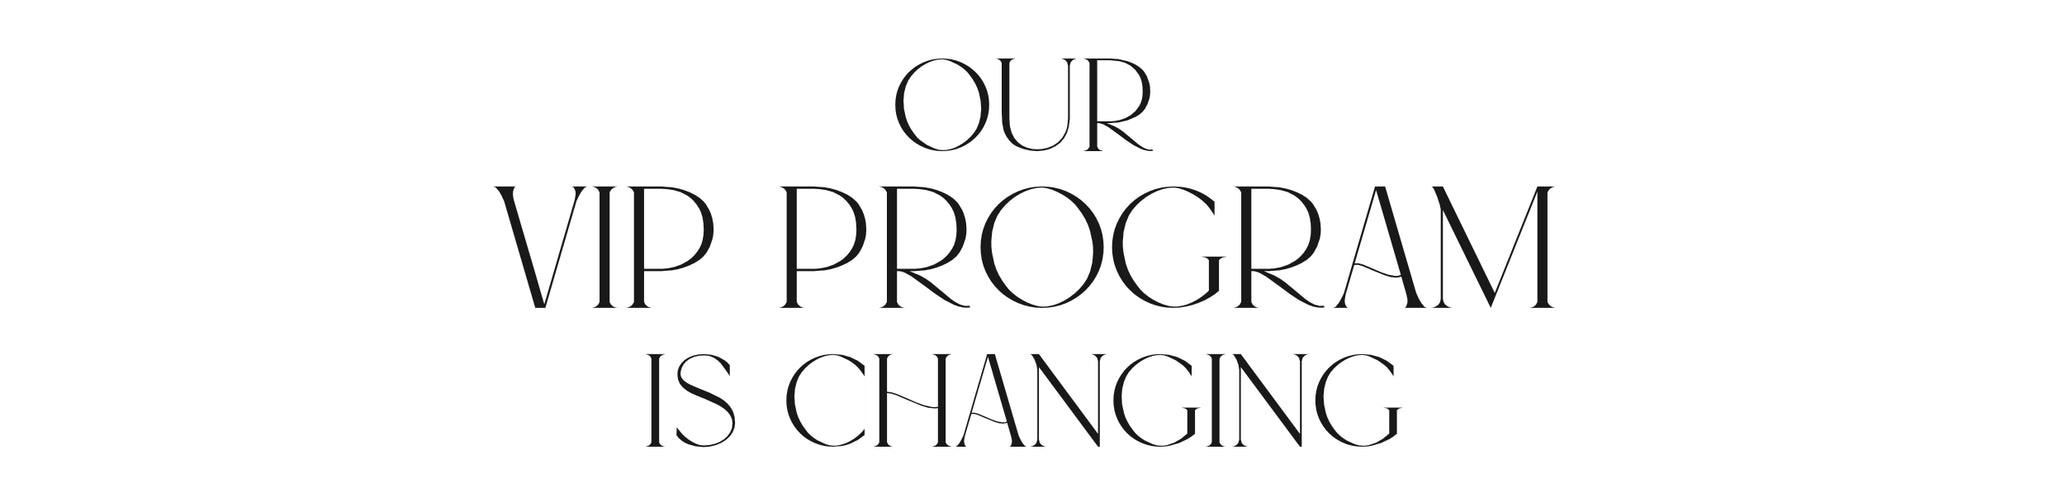 Our VIP Program is Changing